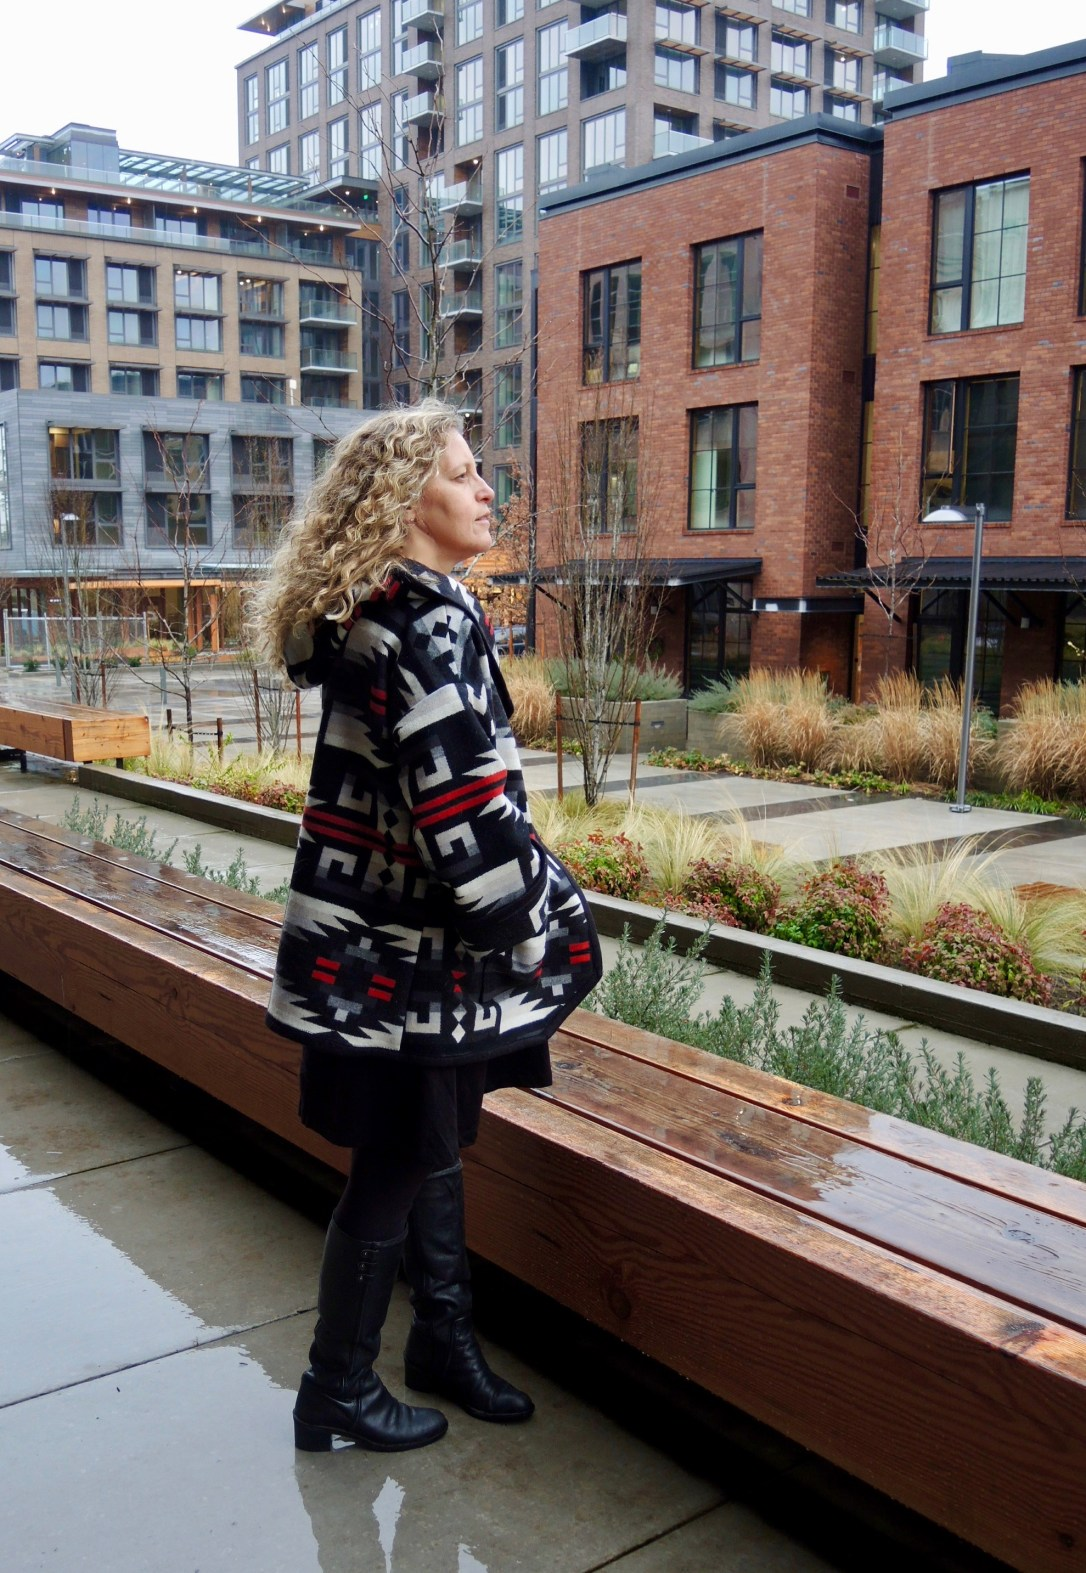 A woman with blond curly hair stands in an urban setting wearing a coat made with Pendleton wool in Rio Rancho, a red and black pattern with white geometric shapes.